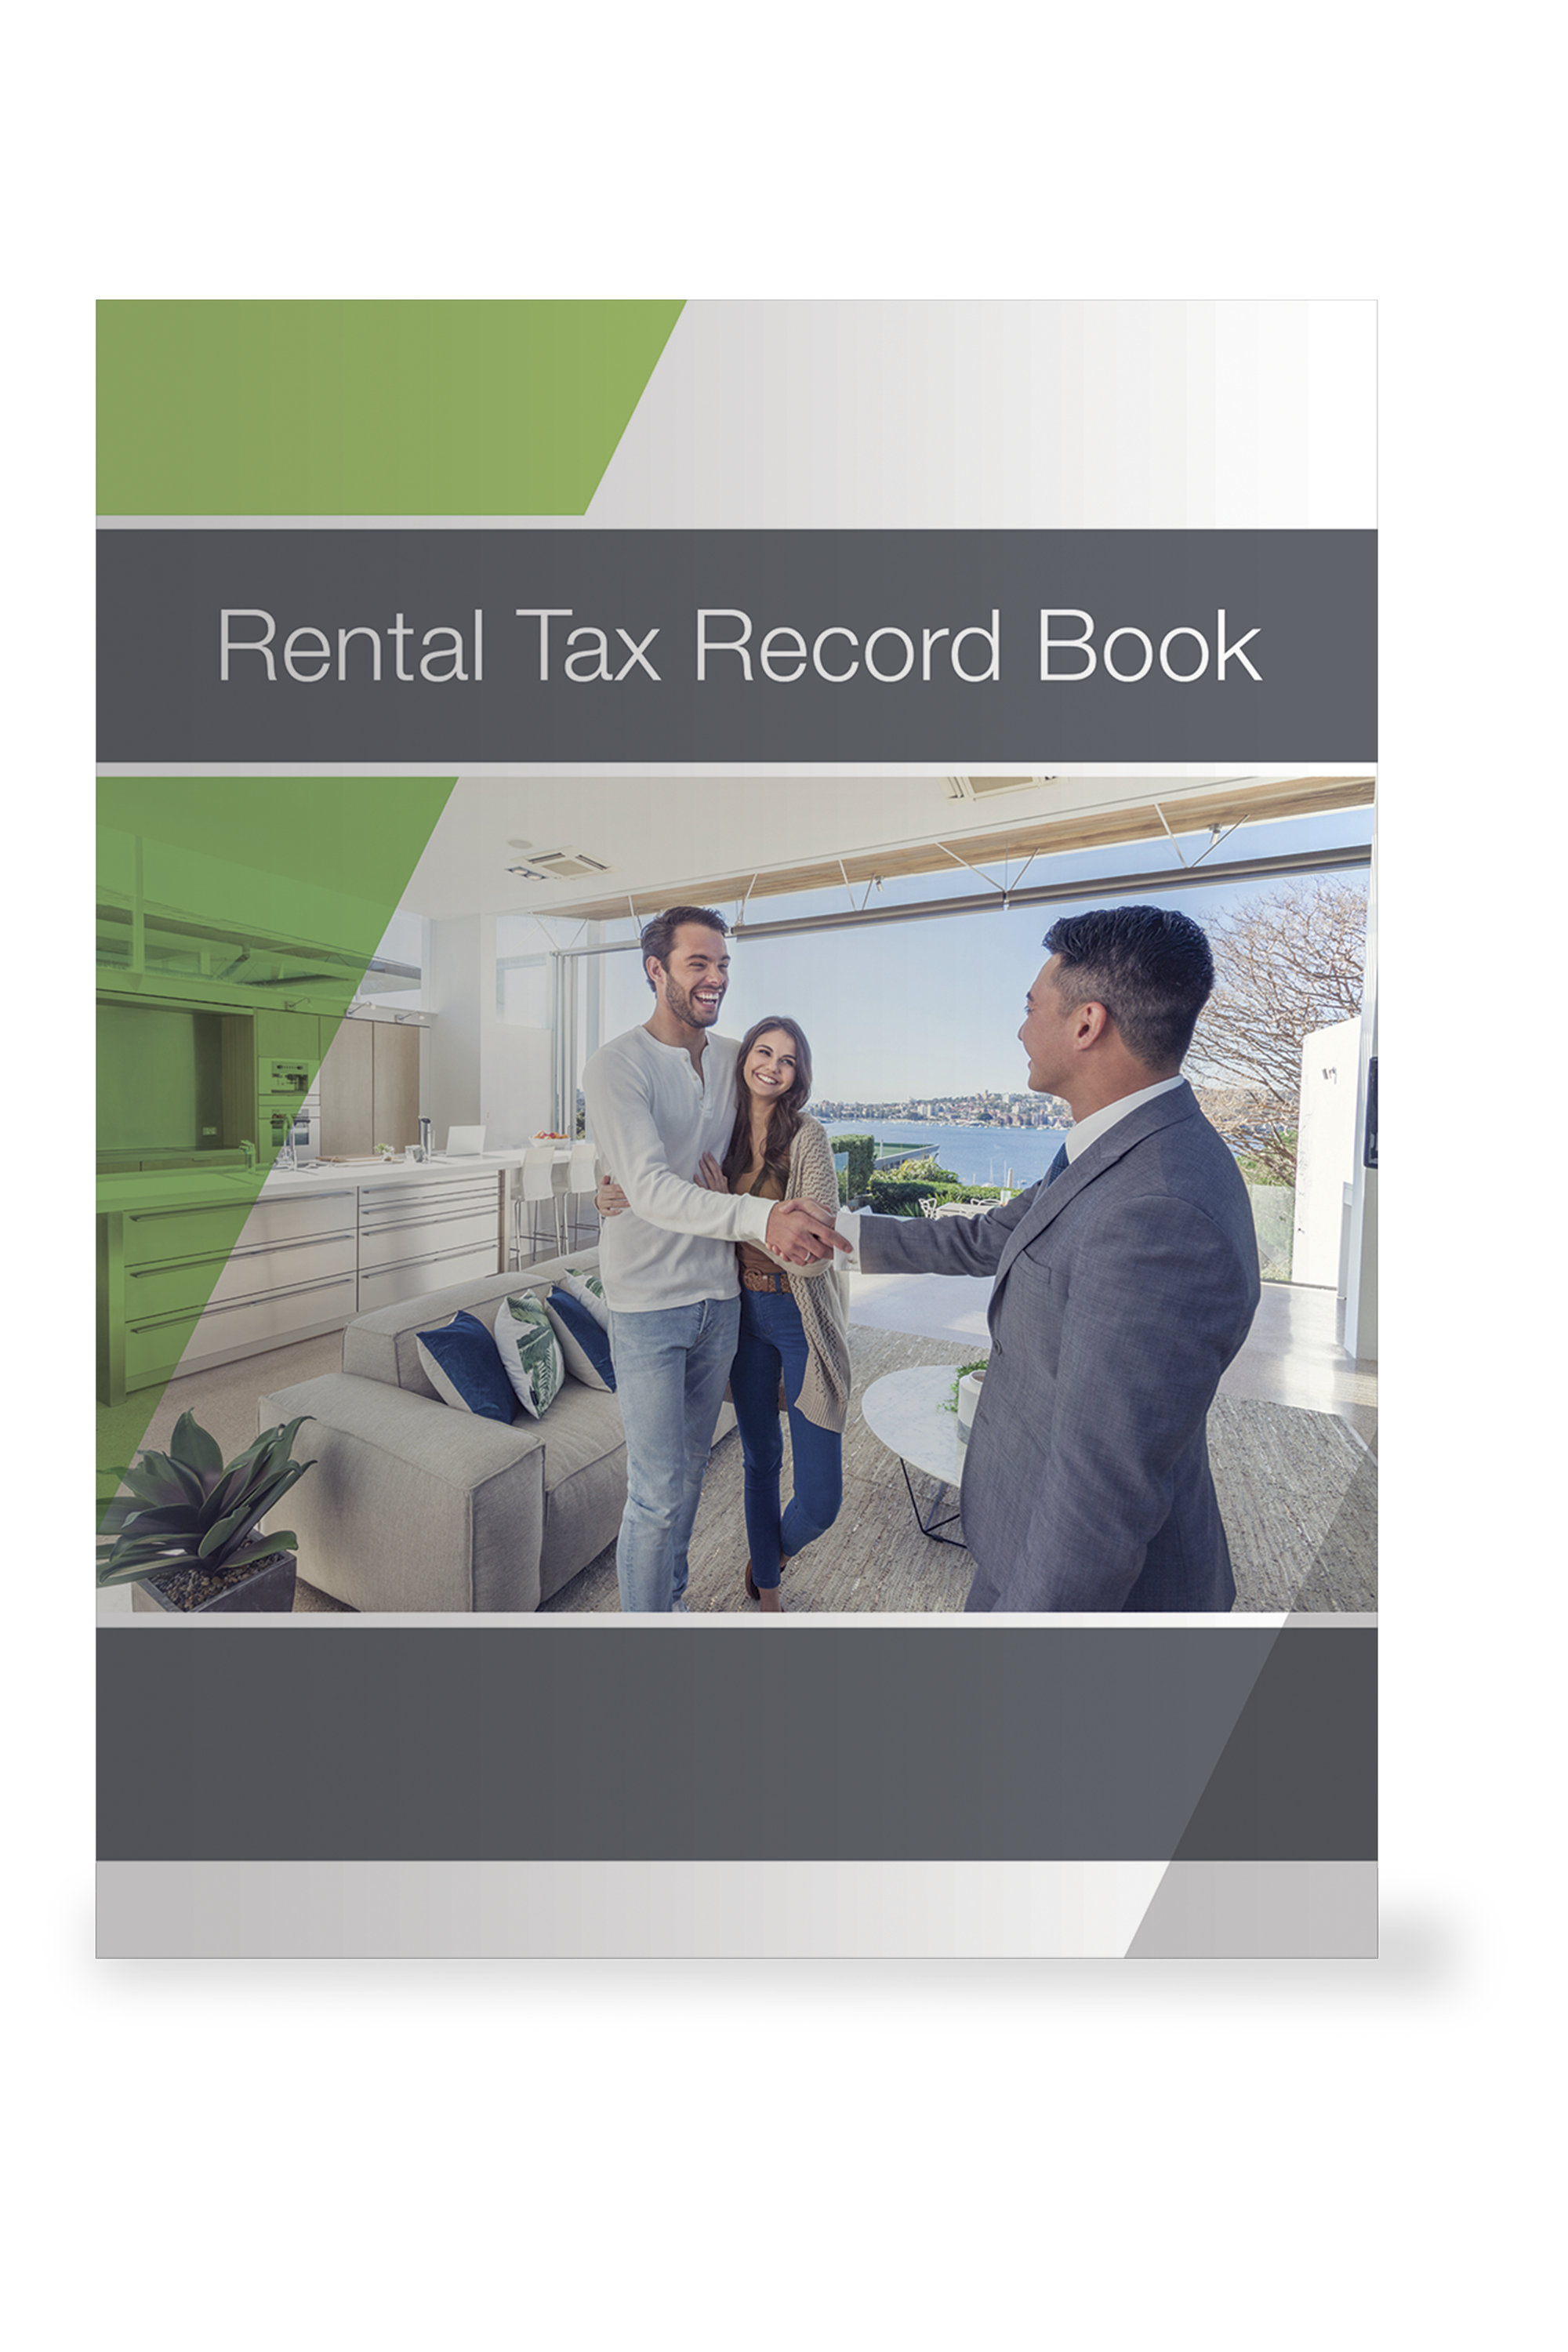 Rental Tax Record Book - #615